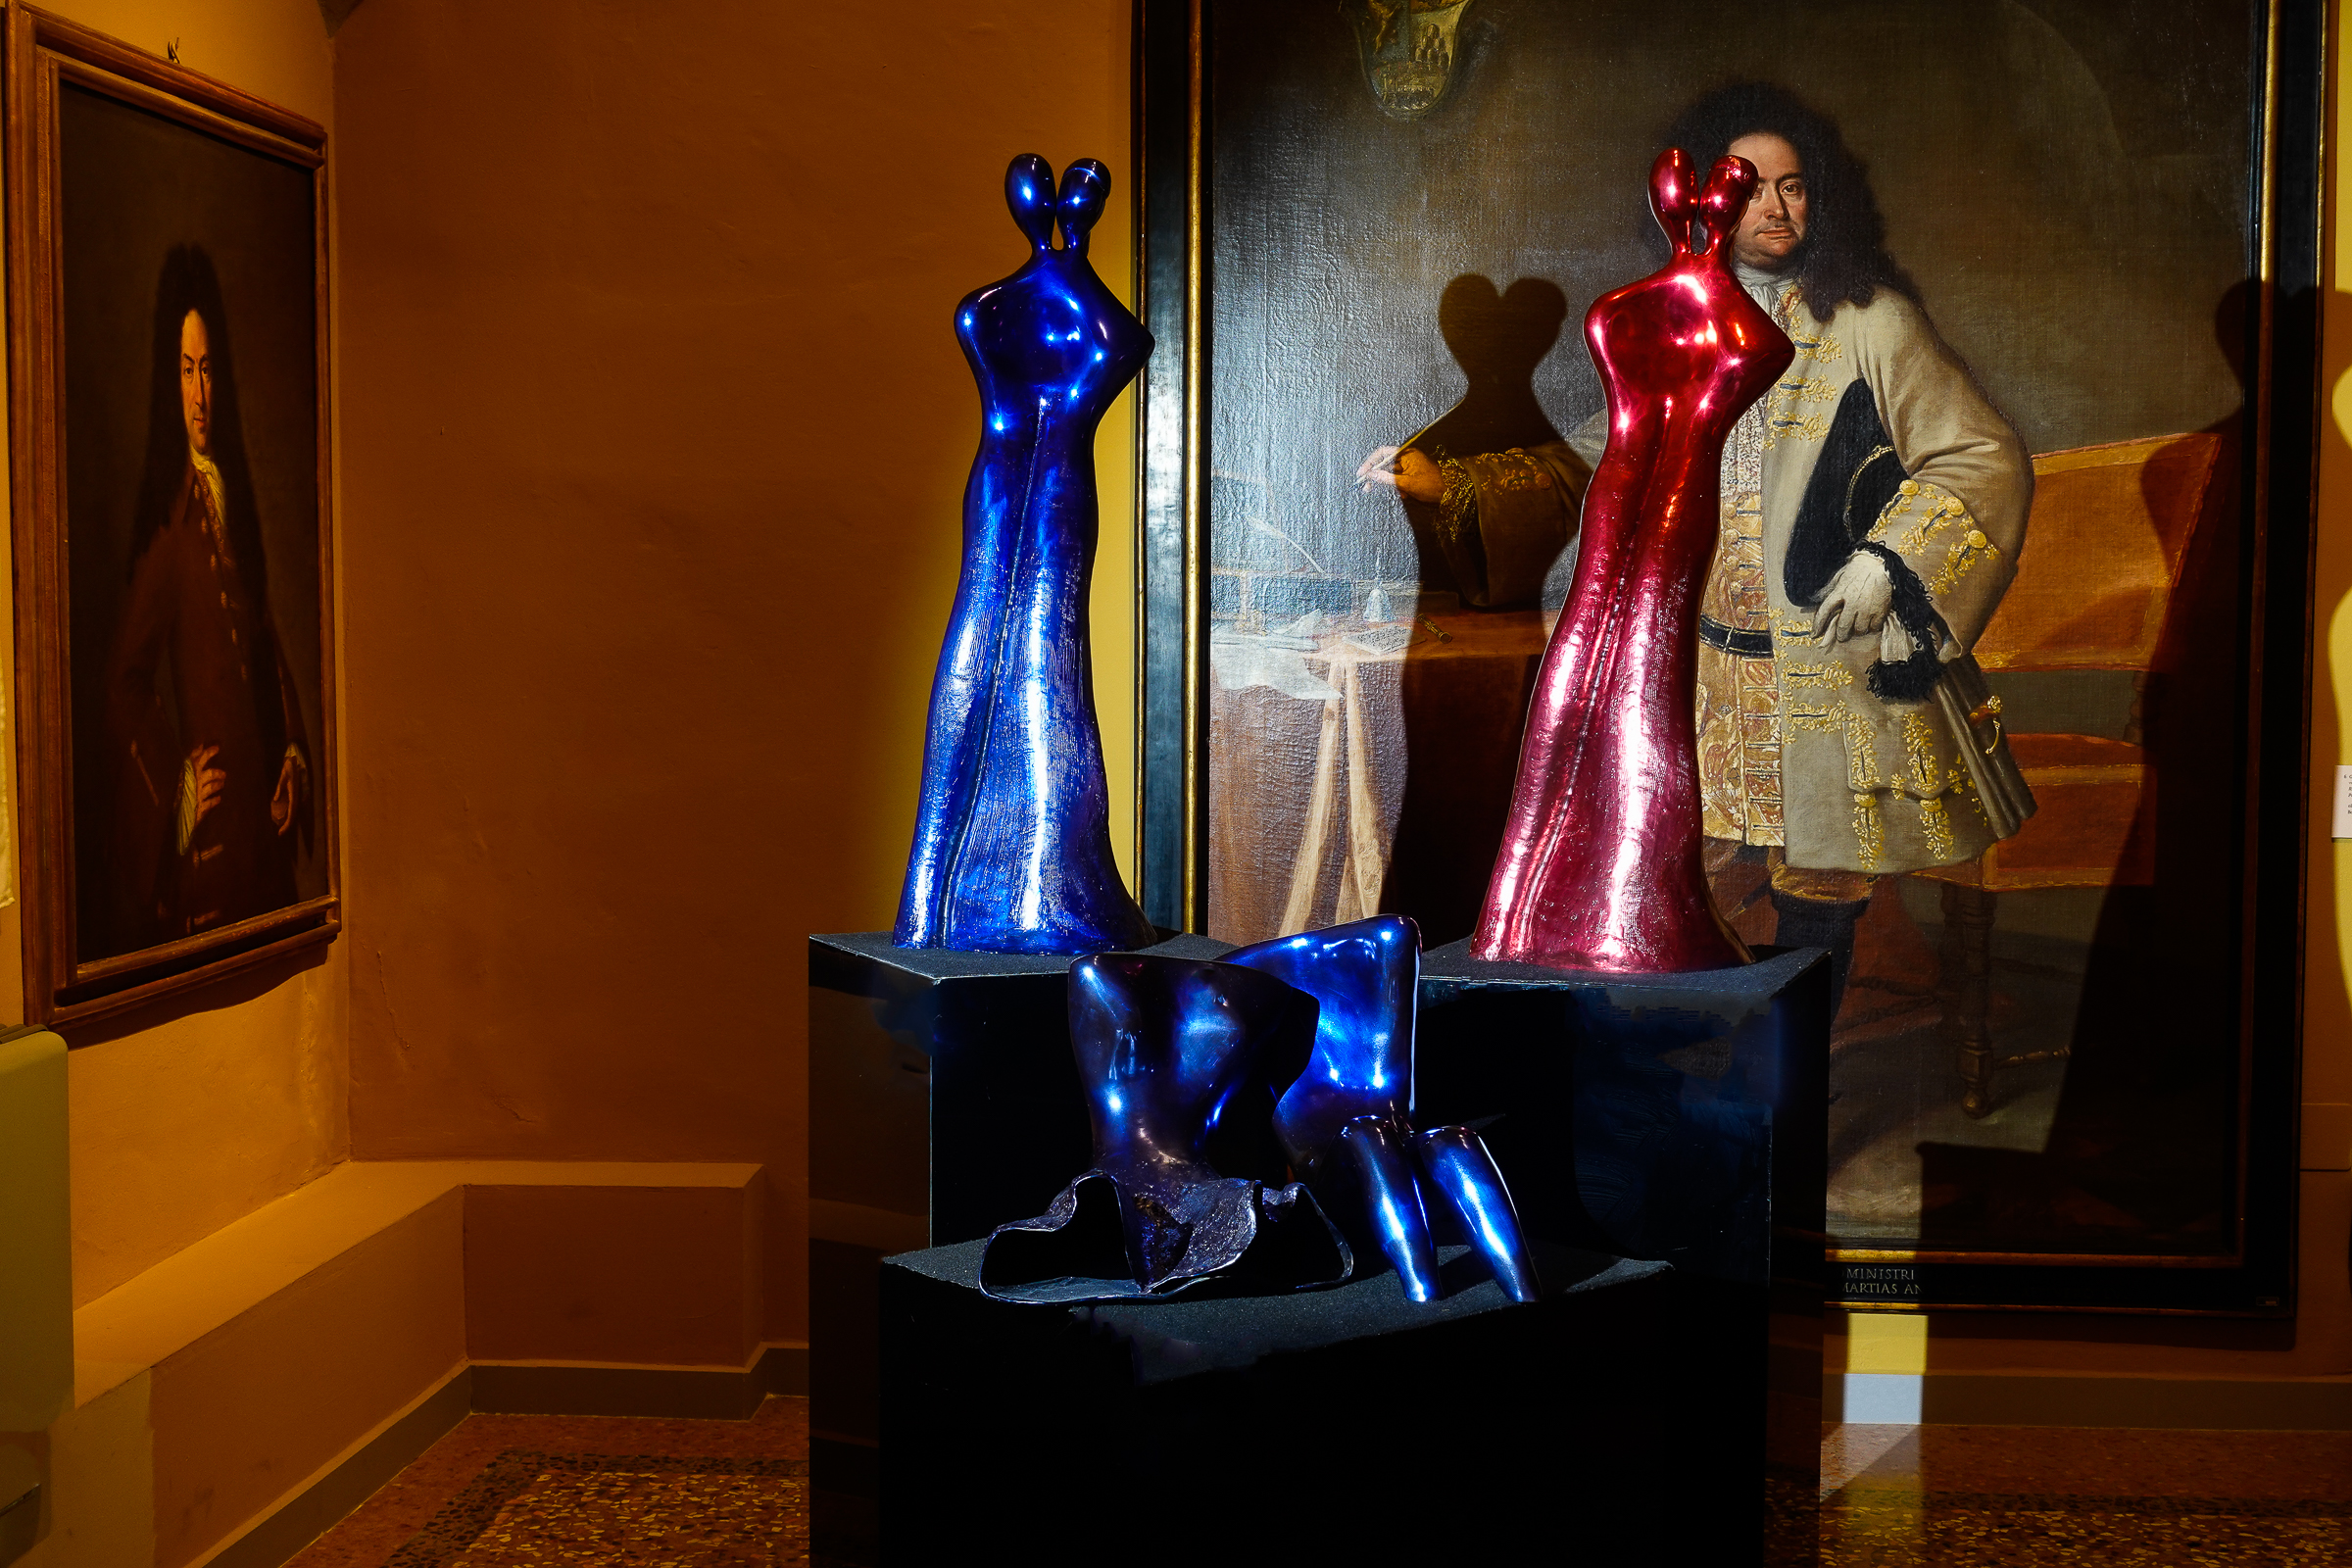 Soulmates, sculptures by Beatriz Gerenstein at the Museum La Quadreria in Bologna Italy